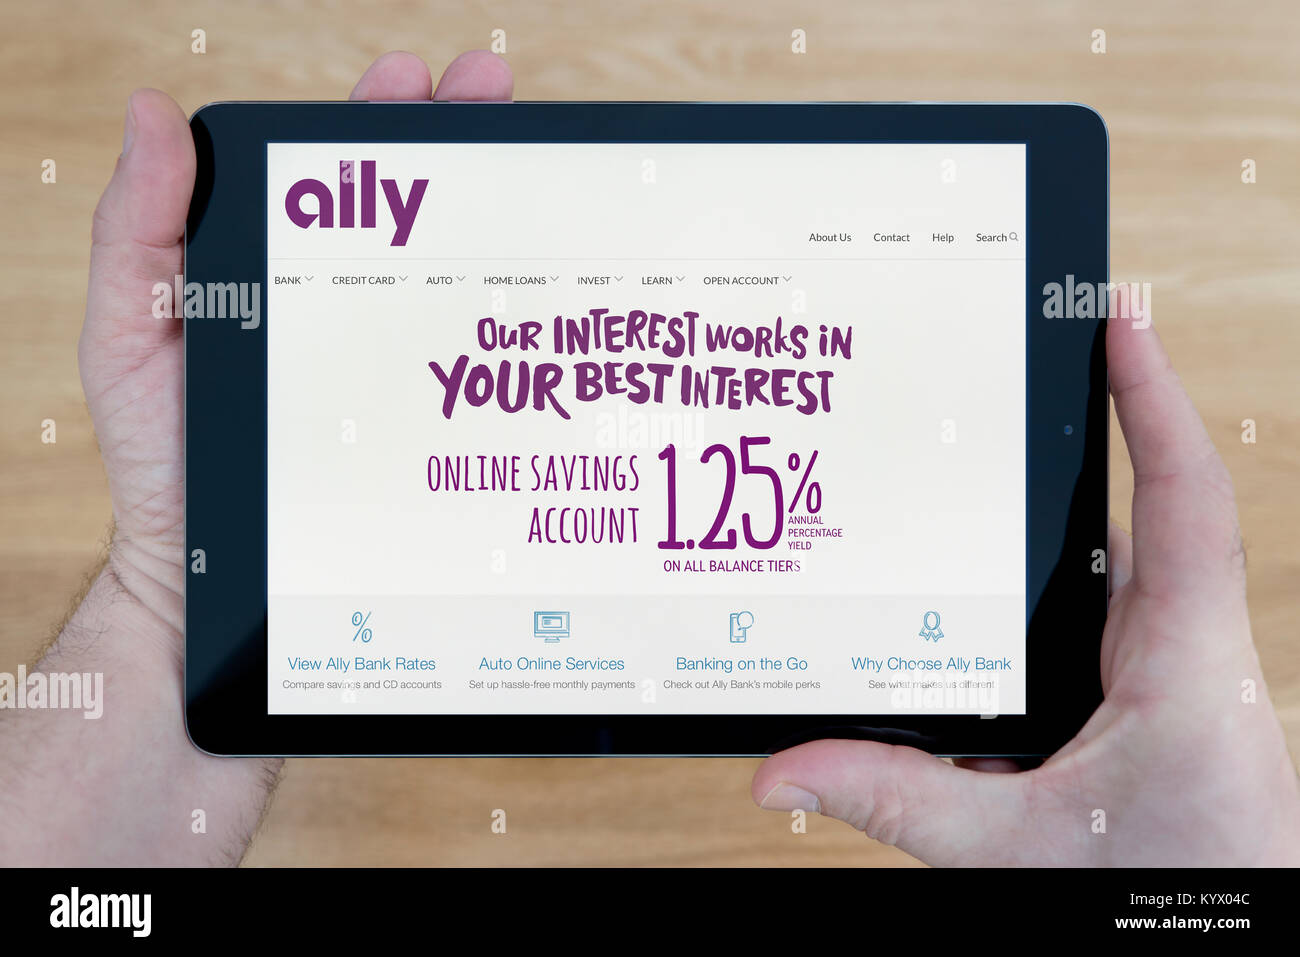 Ally Stock Photos & Ally Stock Images - Alamy